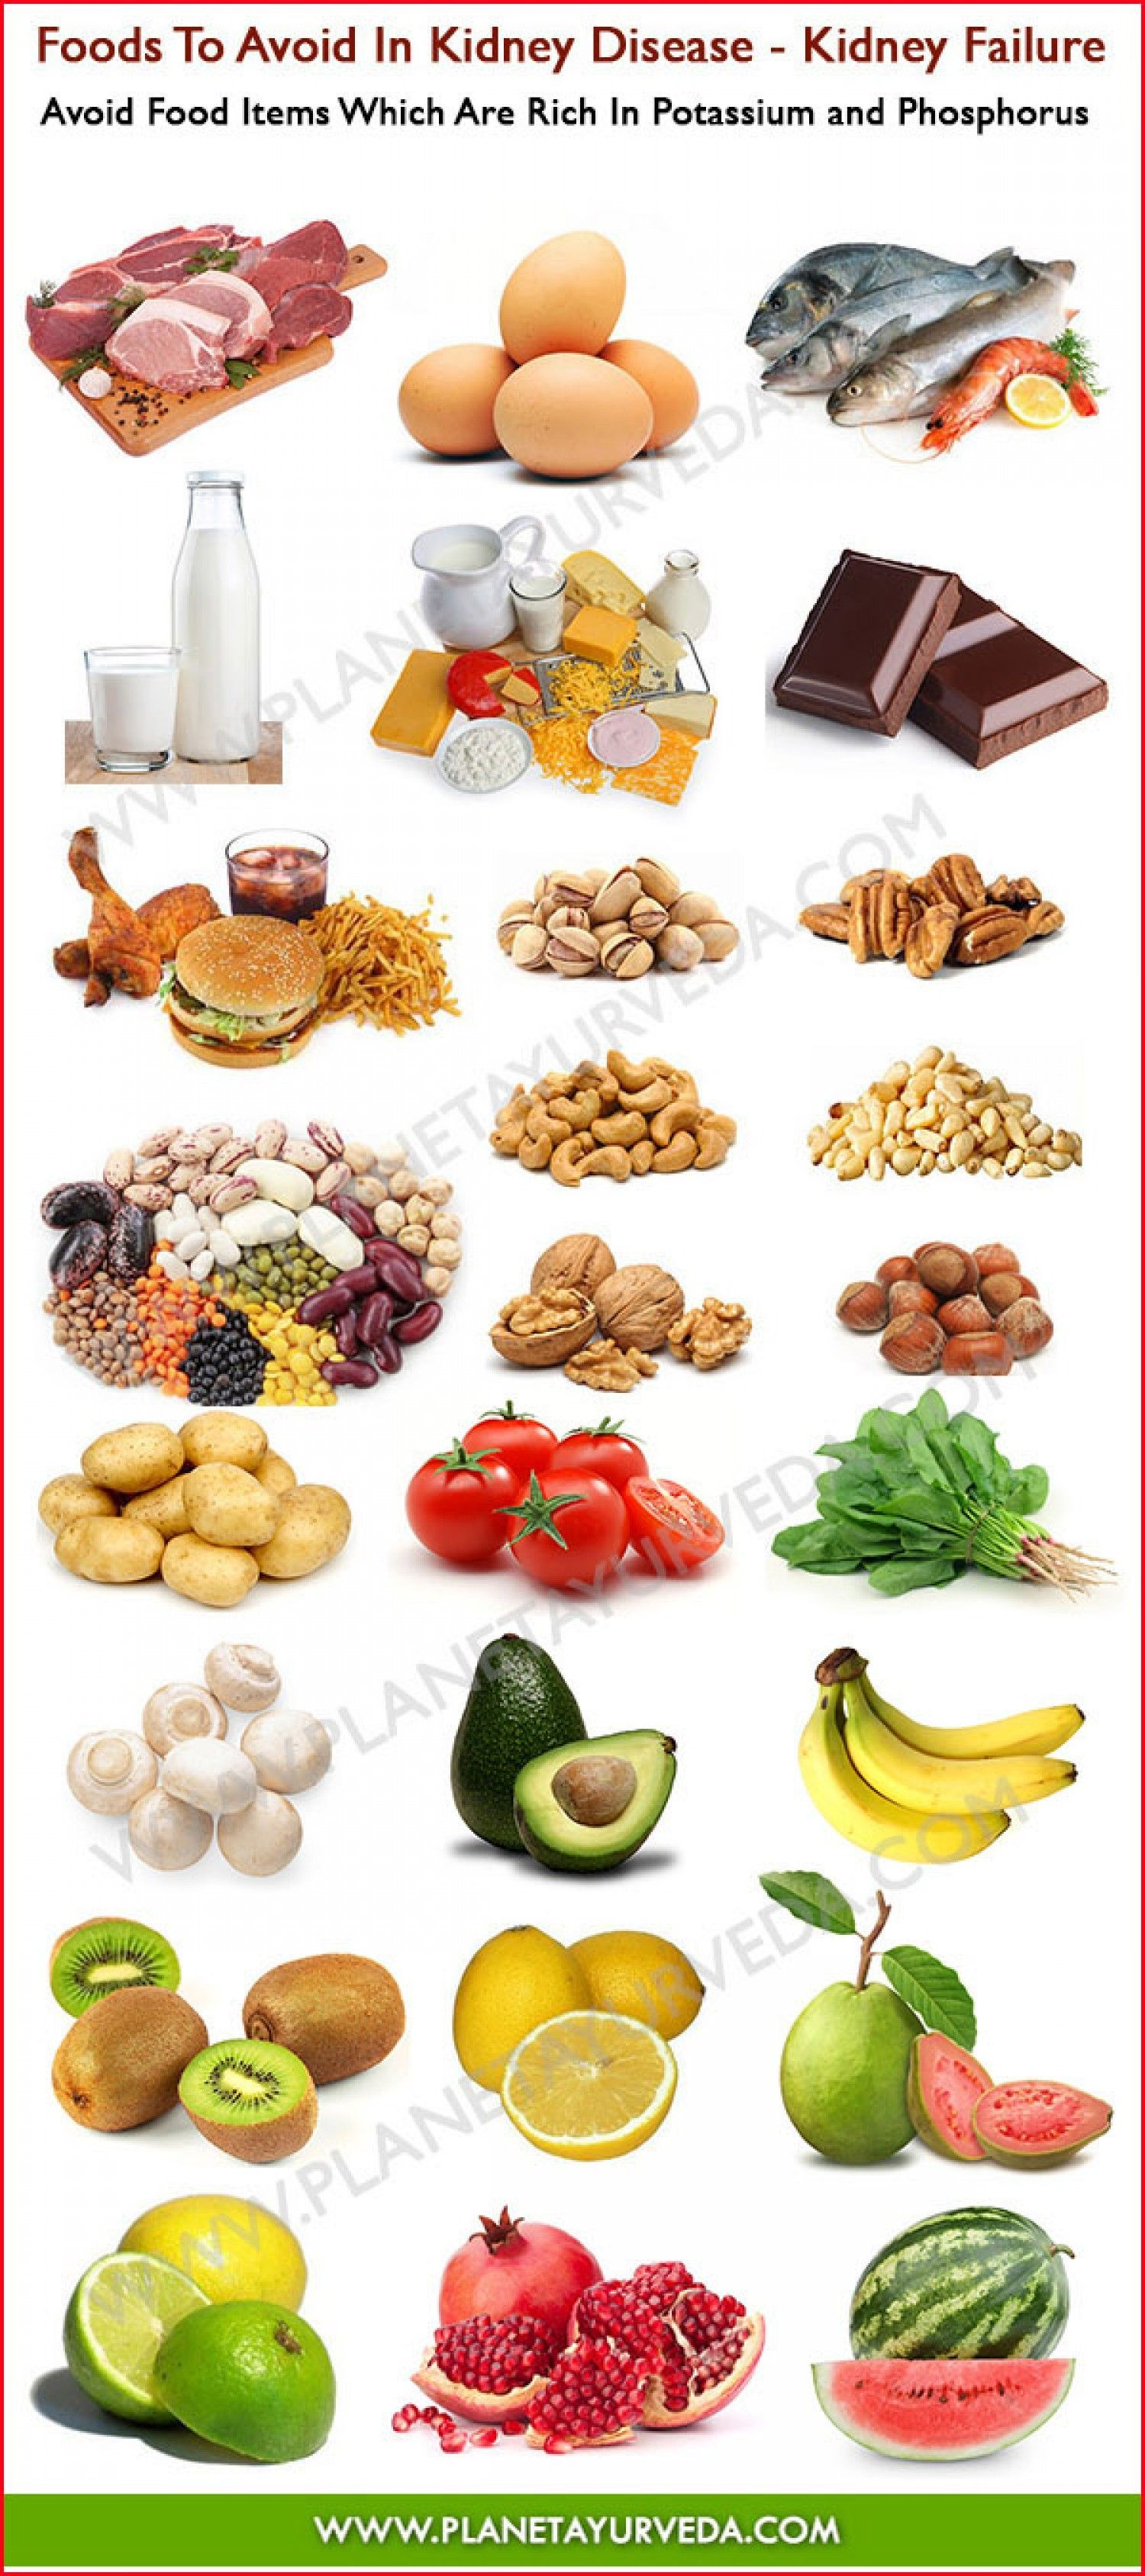 E-Newsletter, 7/22/2014 12:01 PM : Foods To Avoid In Kidney Disease Infographic